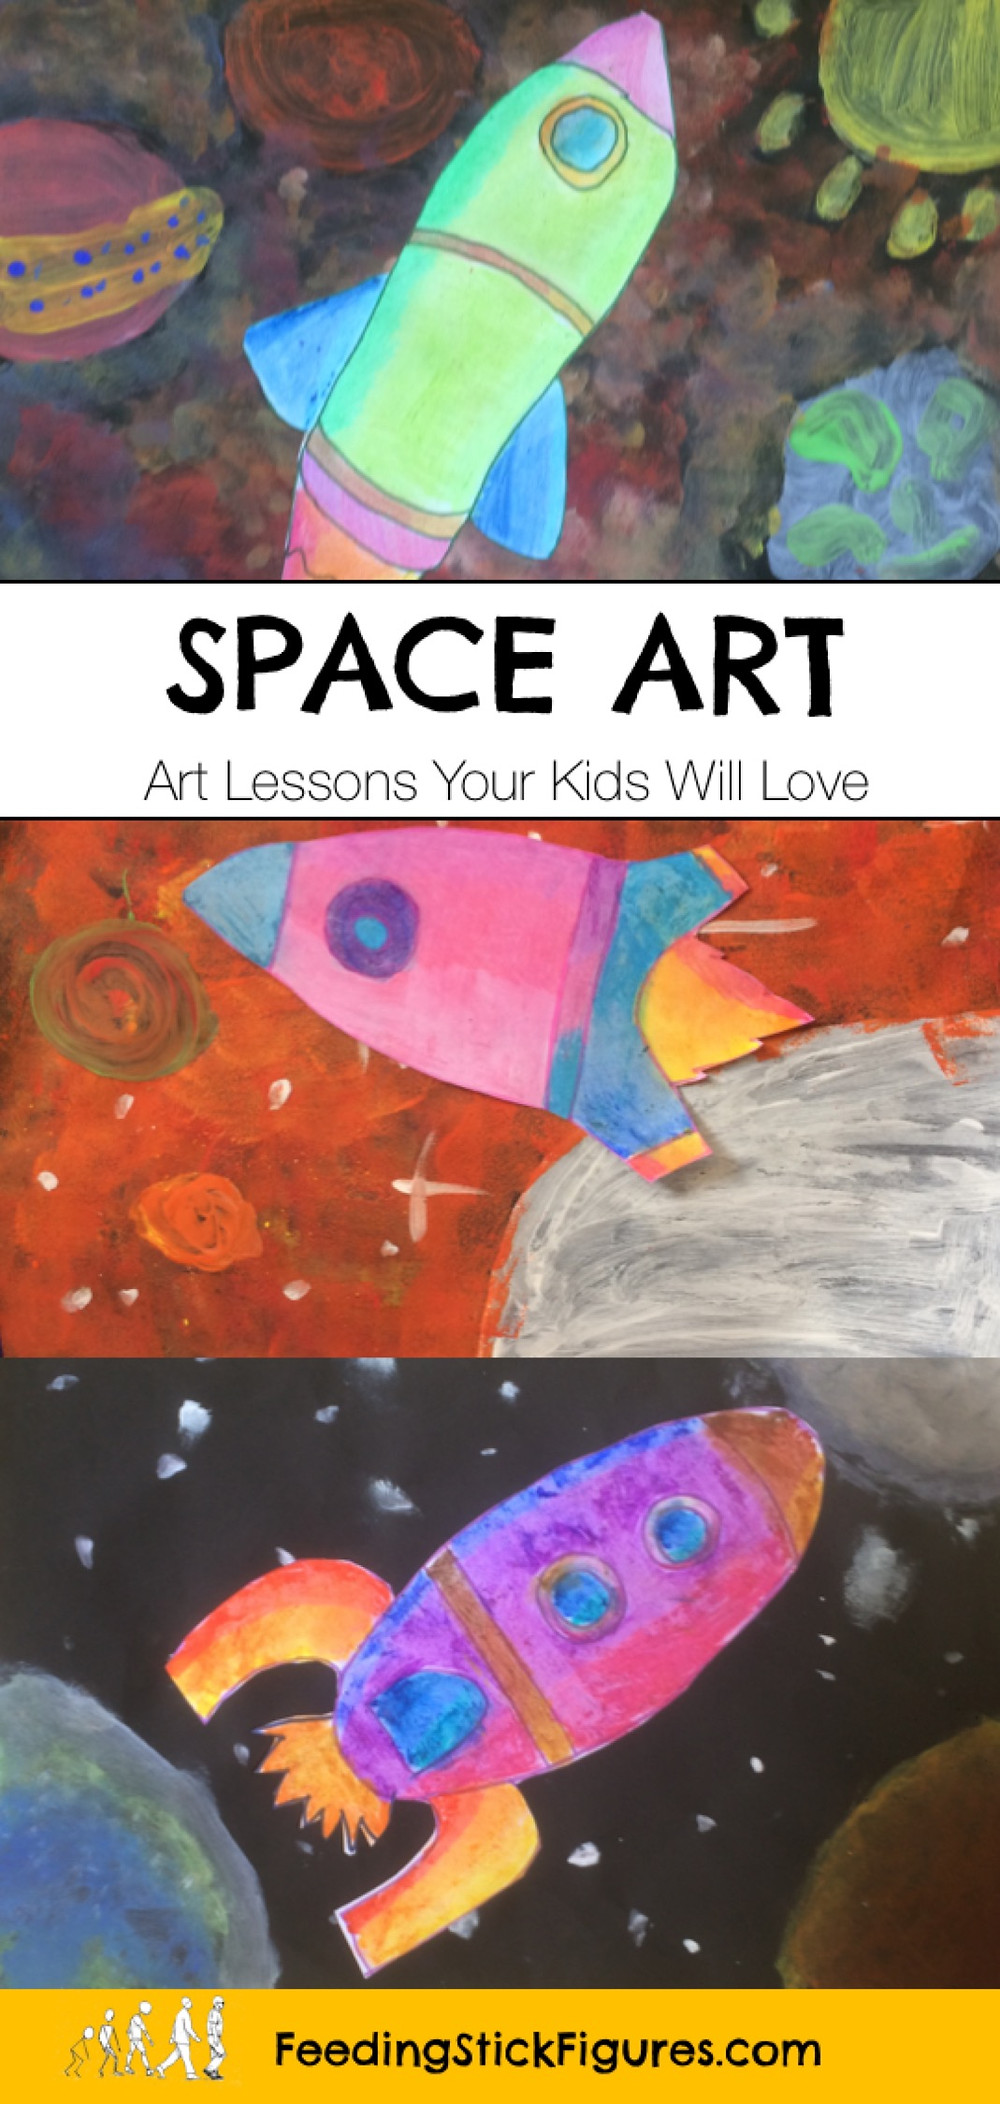 Peter Thorpe - Art lessons for kids by Feeding Stick Figures. Peter Thorpe art painting projects for primary school